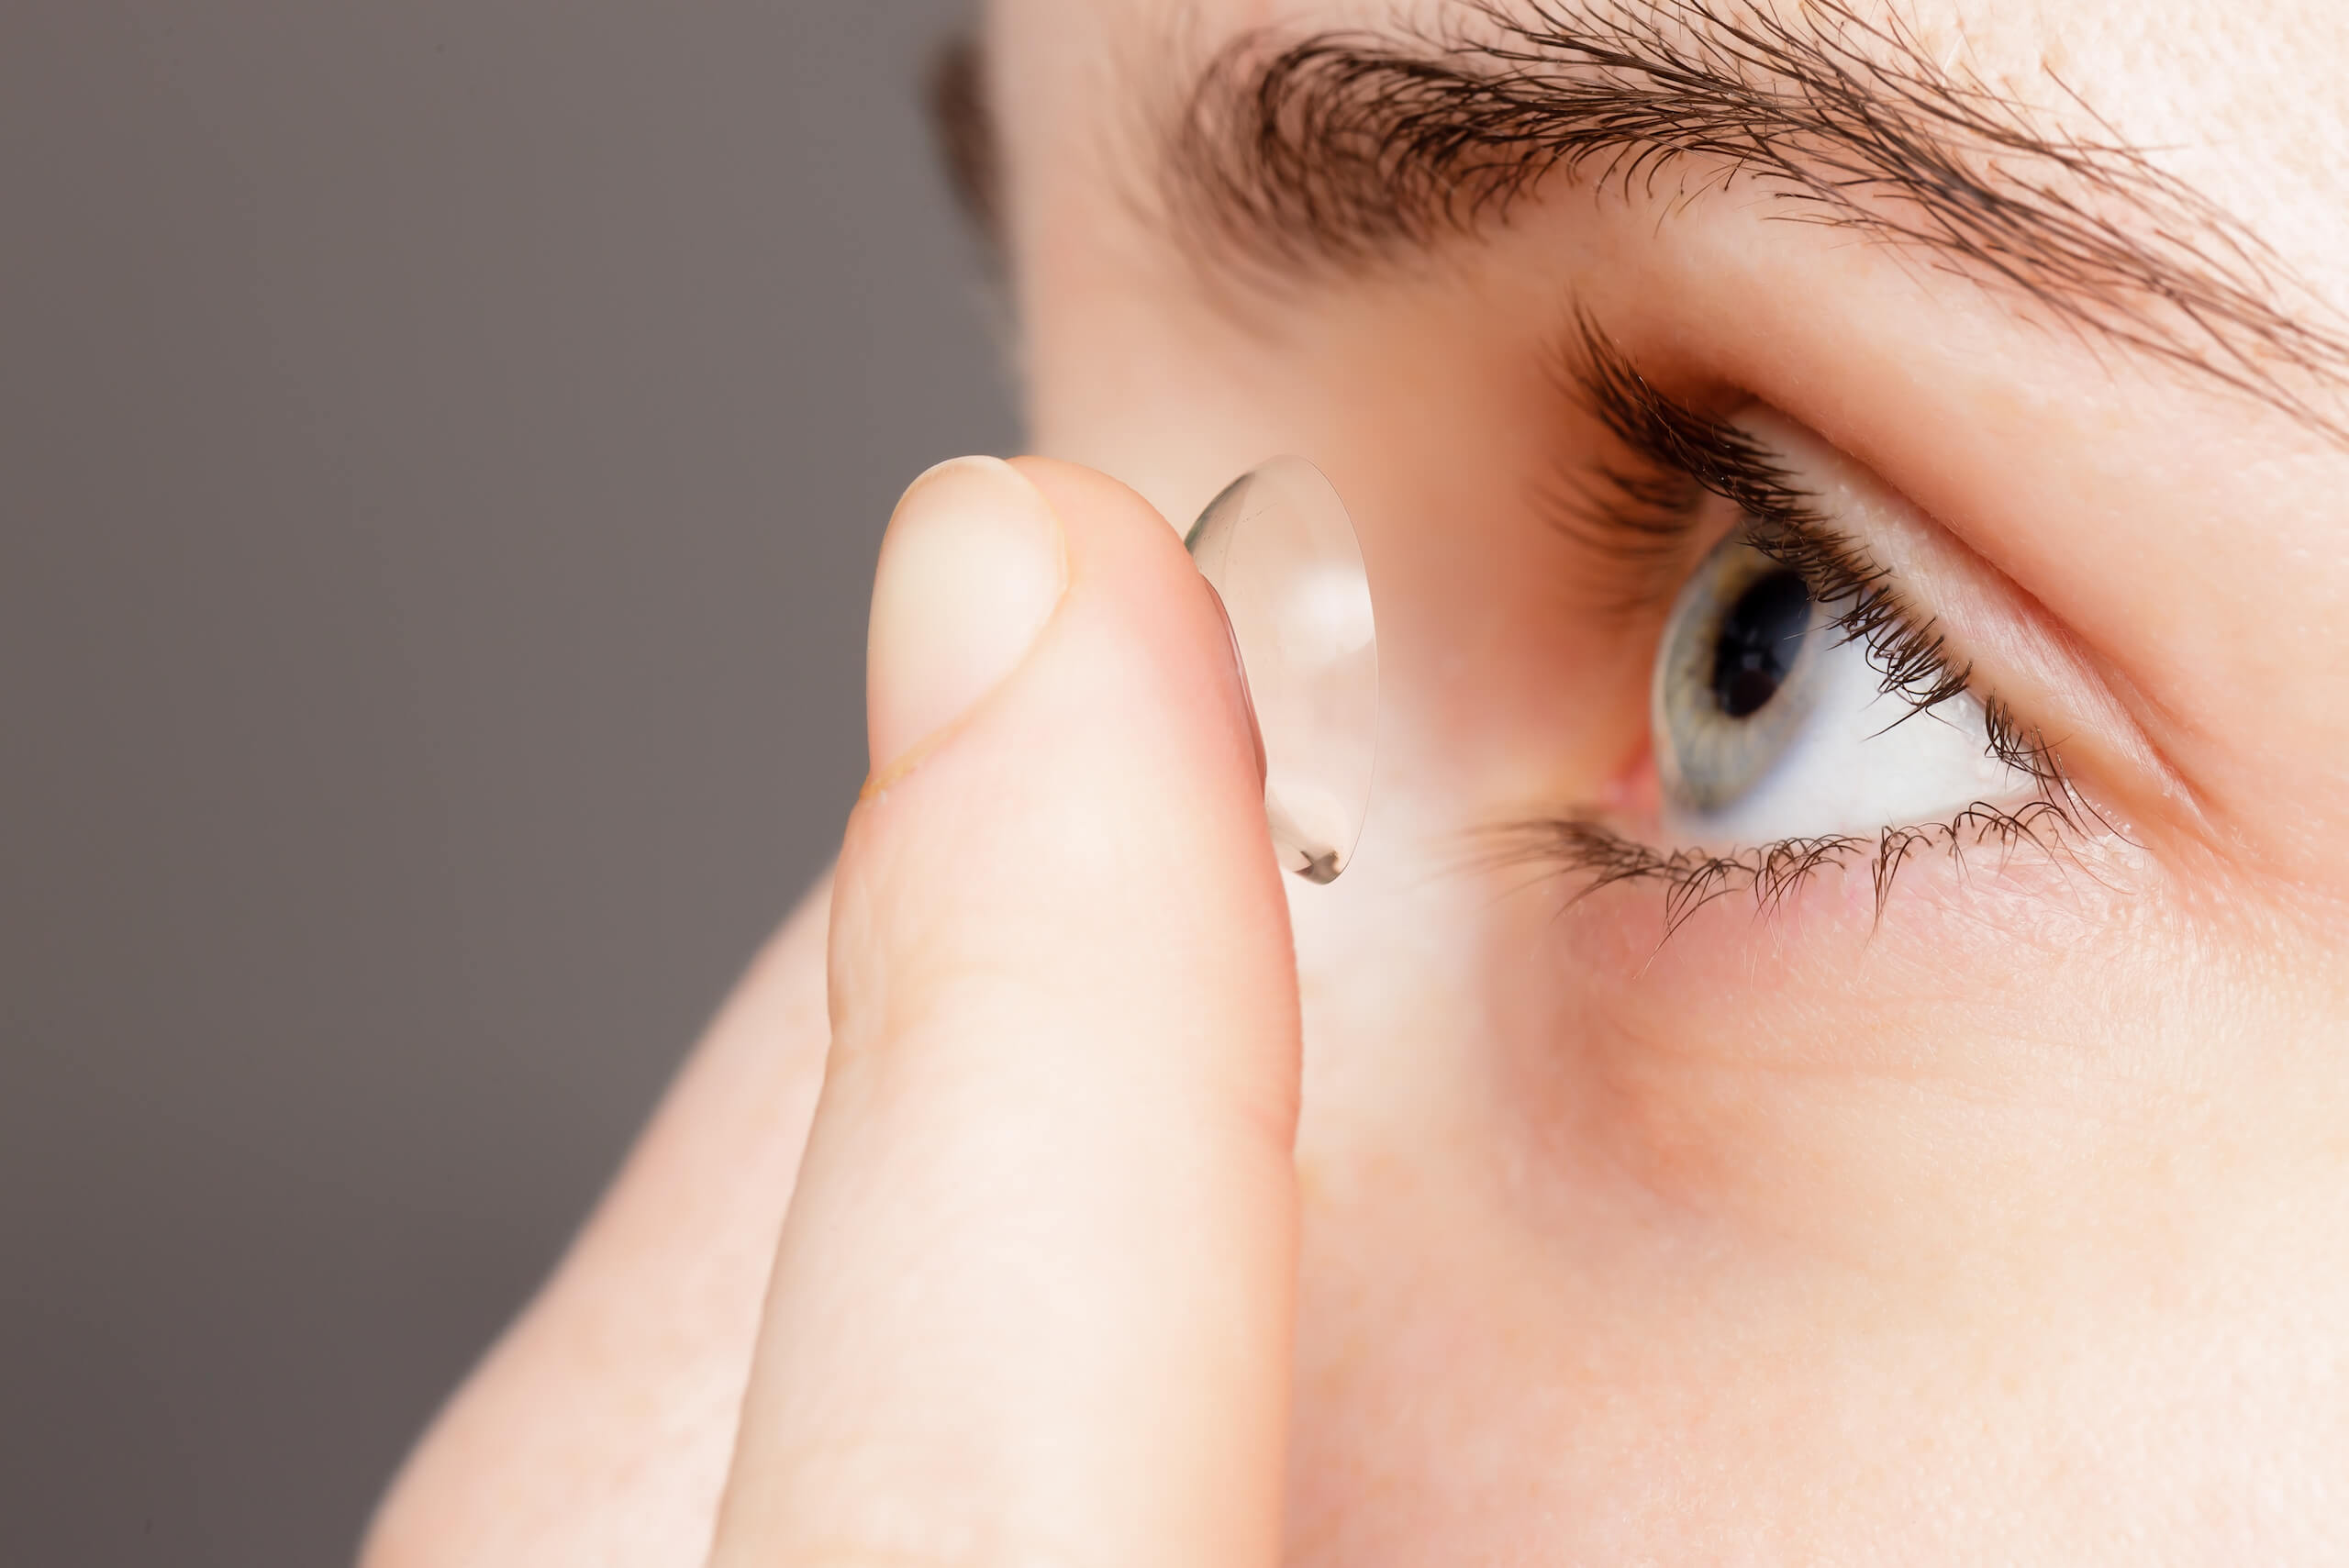 Contact Lenses: Types, Risks, & More